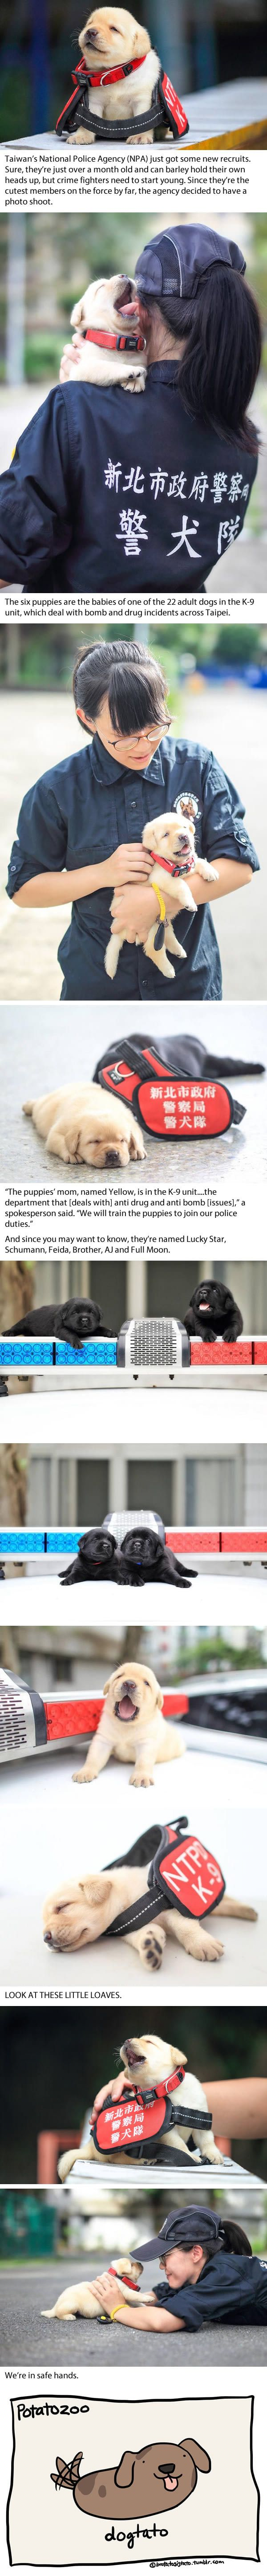 Best Police Humor Images On Pinterest Leo November And - The internet cant get enough of the taiwan police forces newest k9 recruits